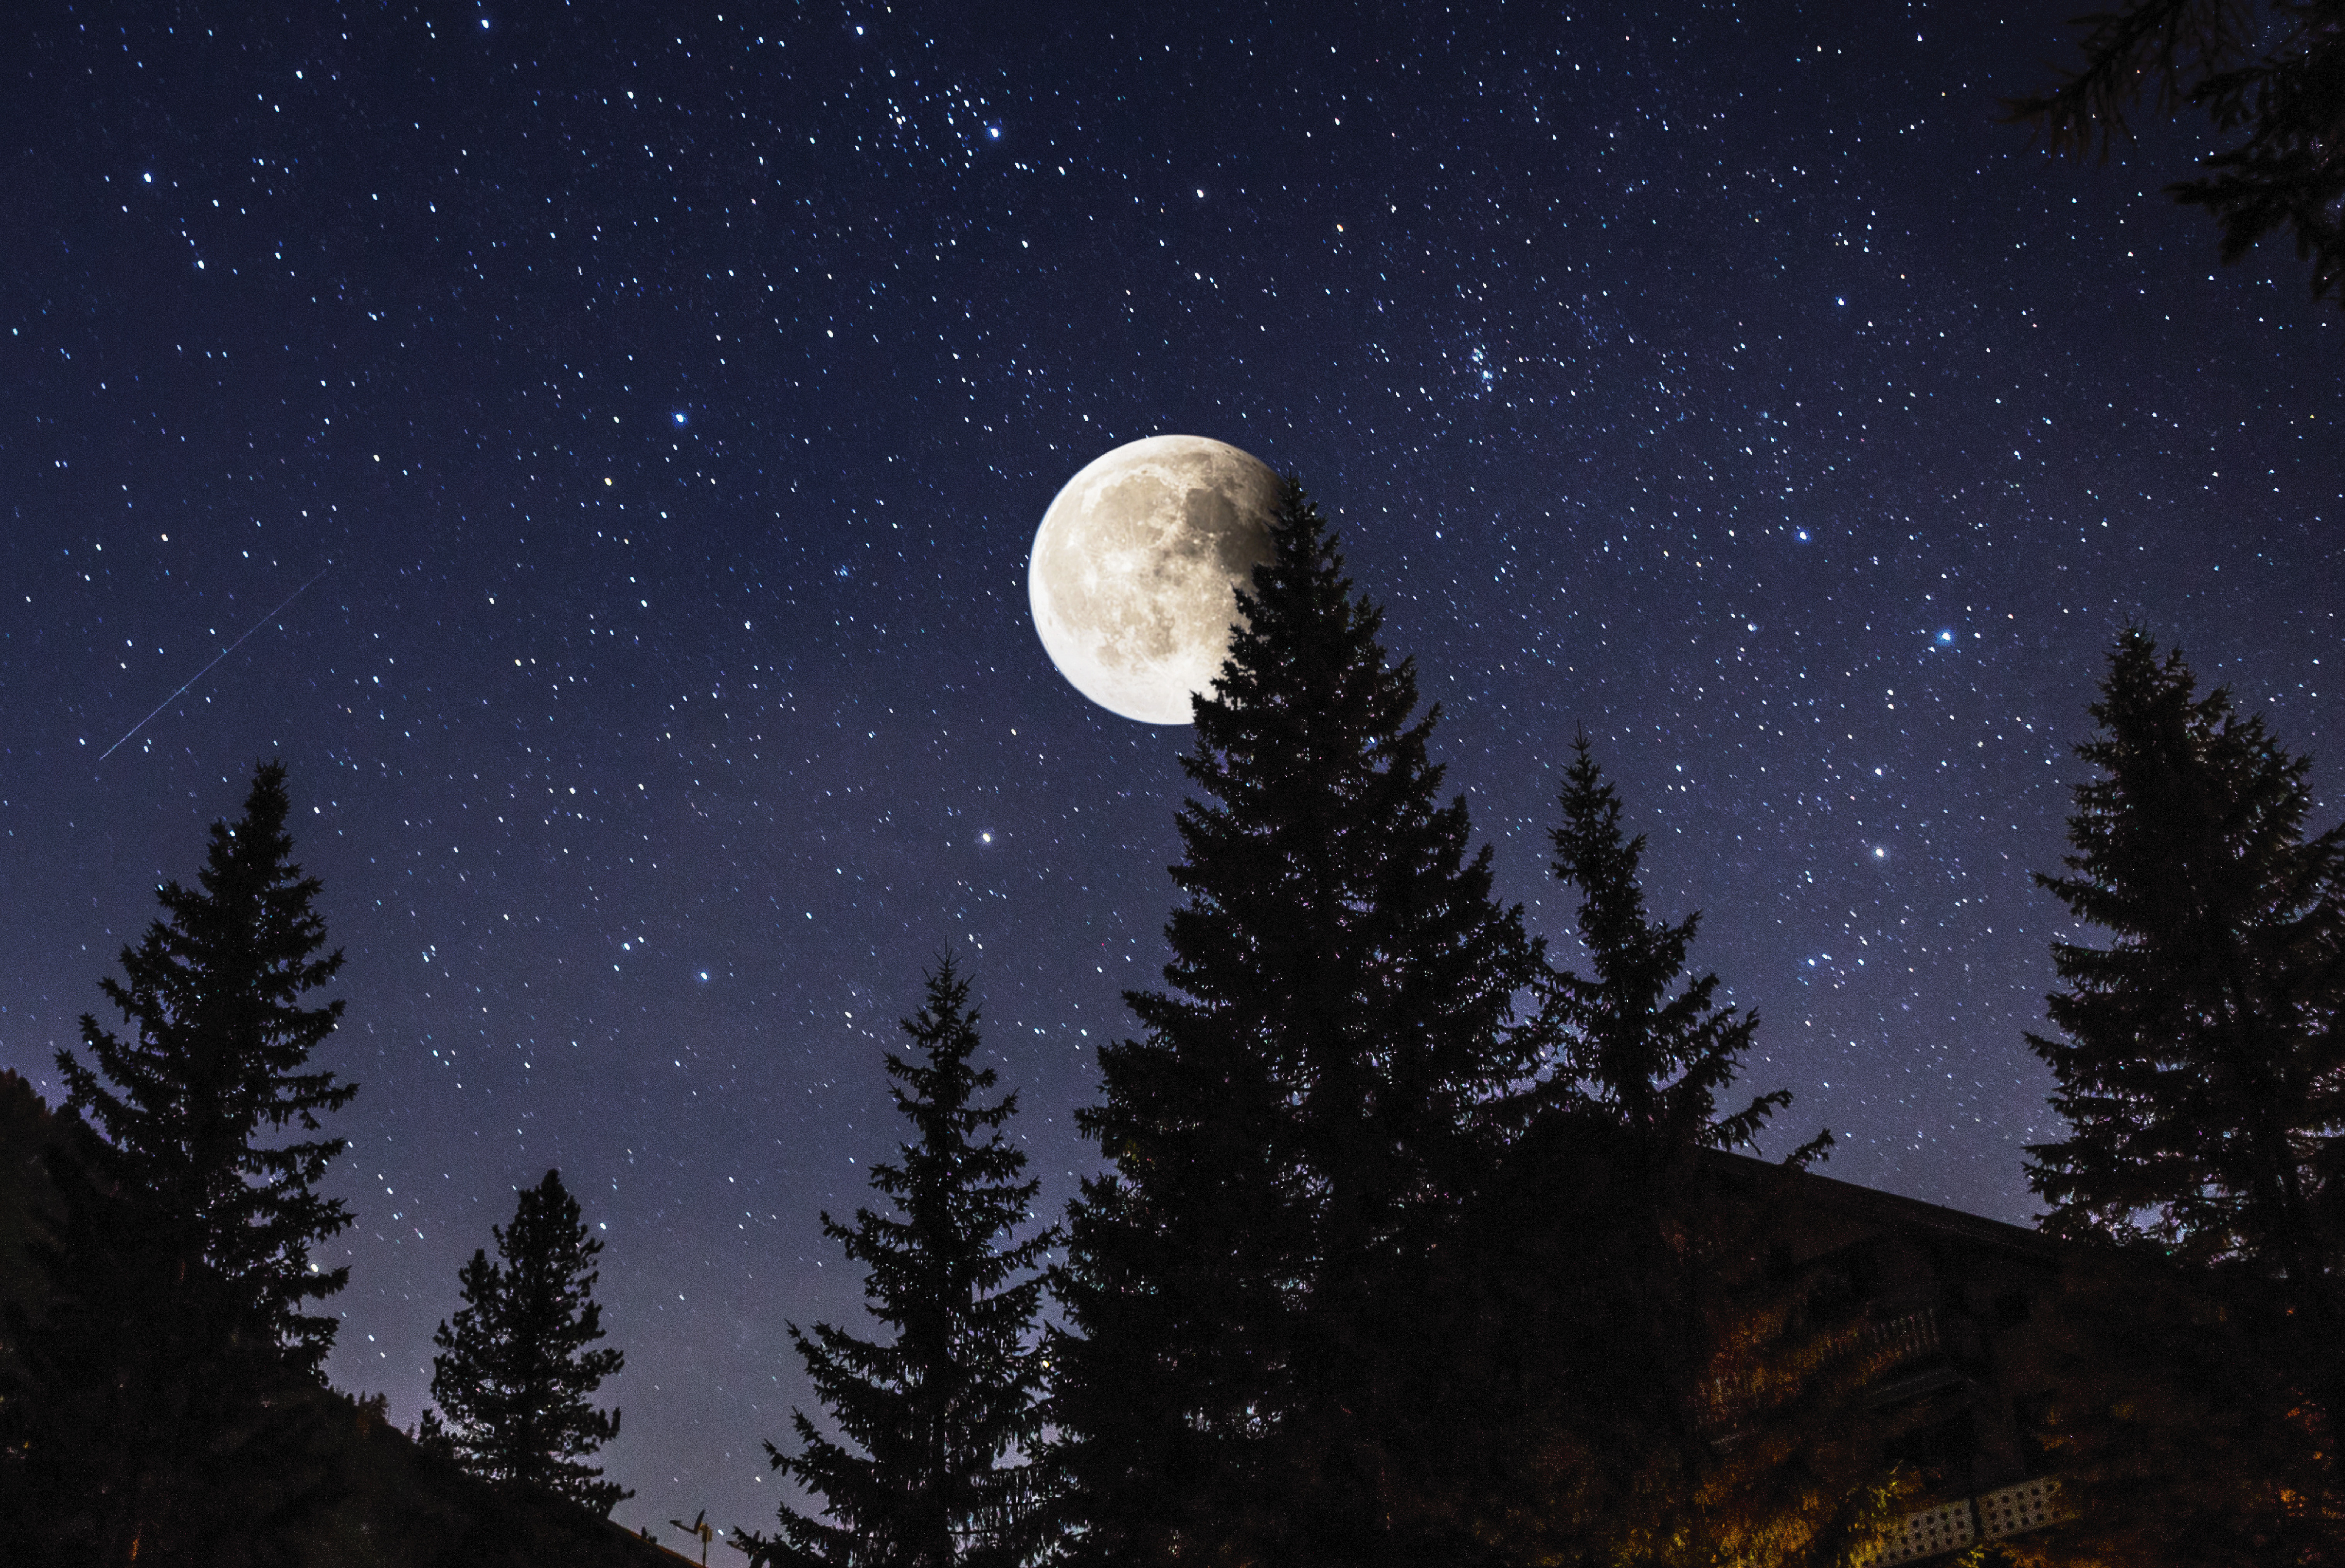 the moon and a clear, starry sky